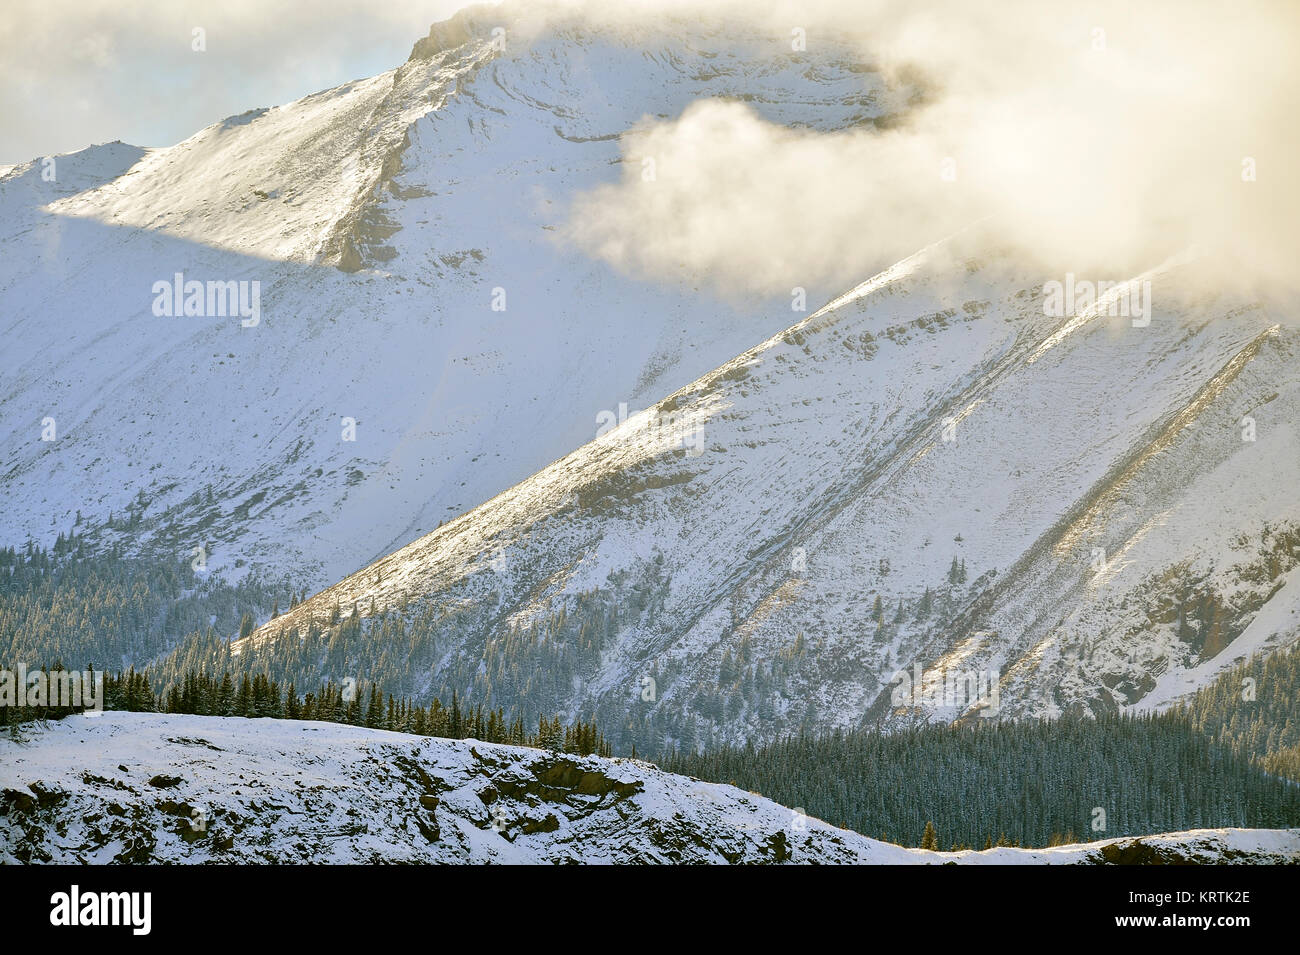 A close up landscape of therocky mountains in Alberta Canada with warm tone golden light shining on the fresh snow. - Stock Image